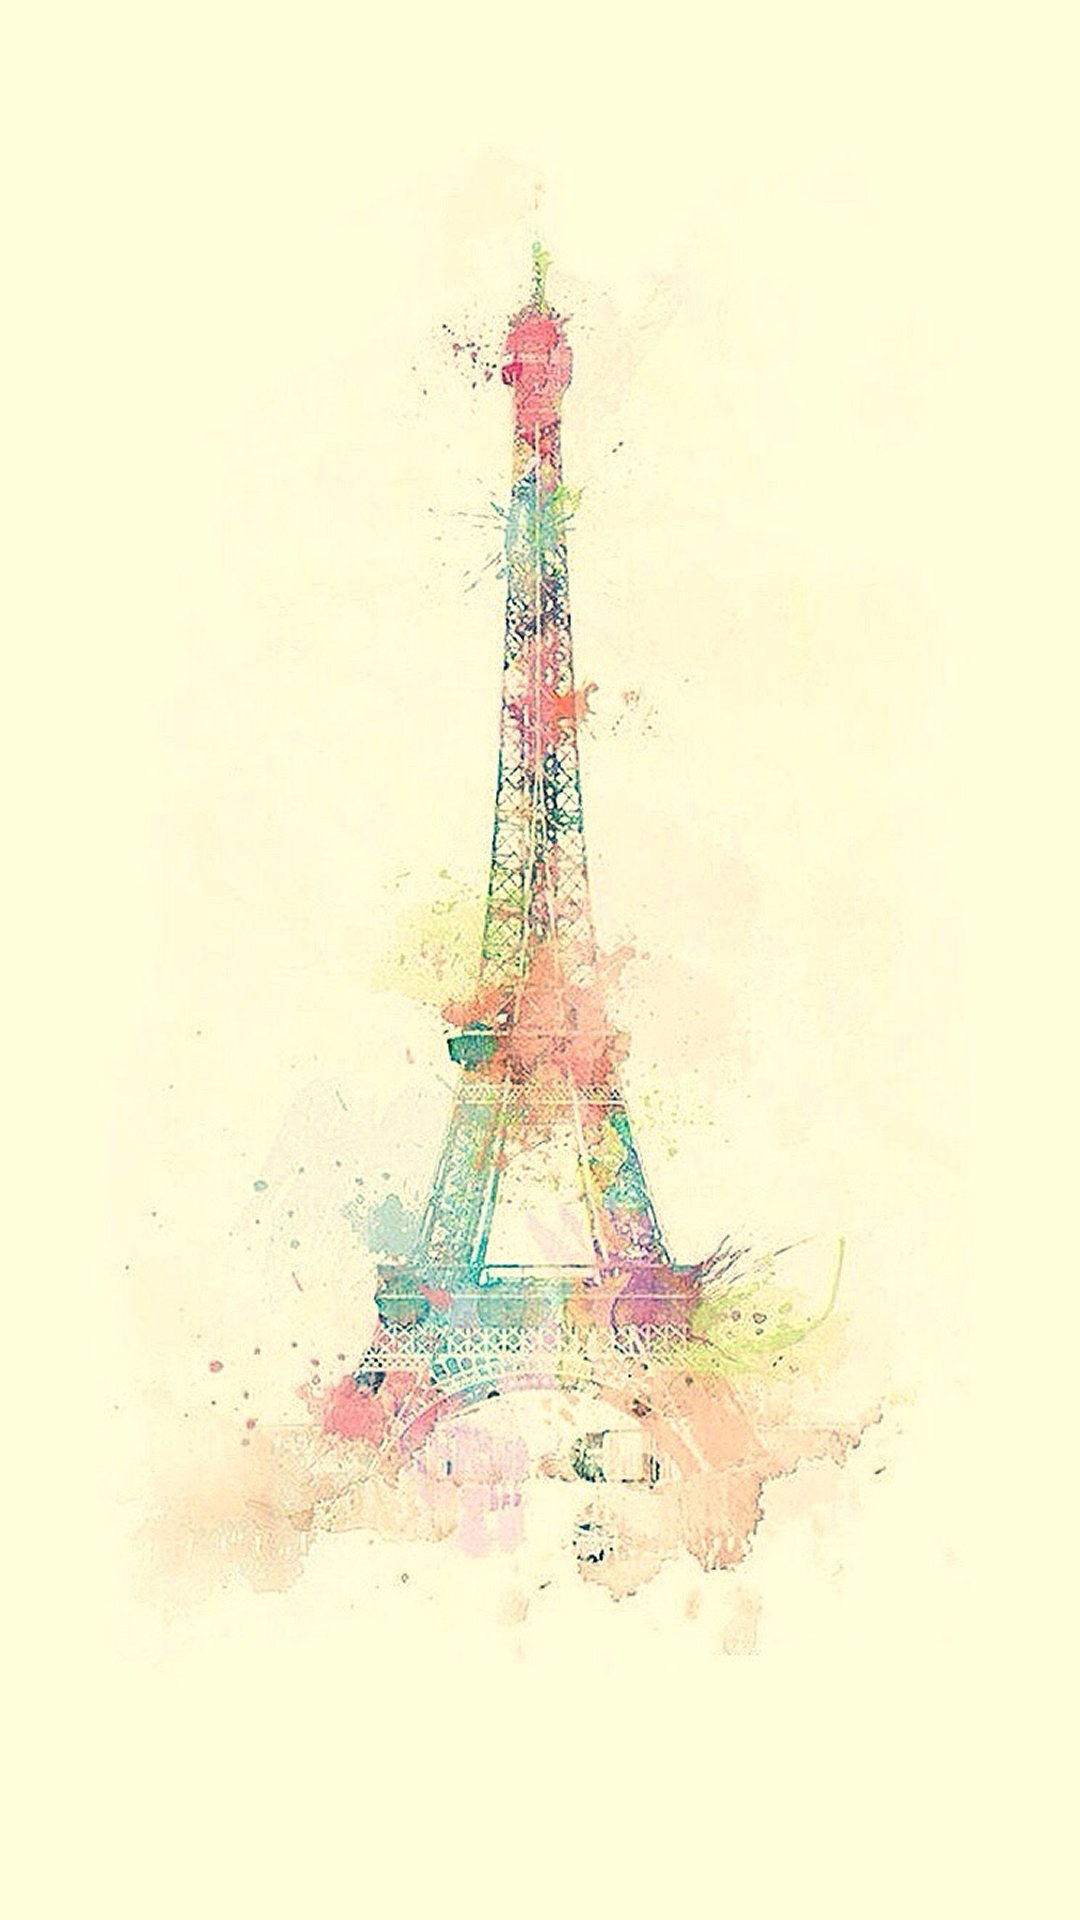 Tower Watercolor Paint iPhone 6 Wallpaper Download iPhone Wallpapers 1080x1920